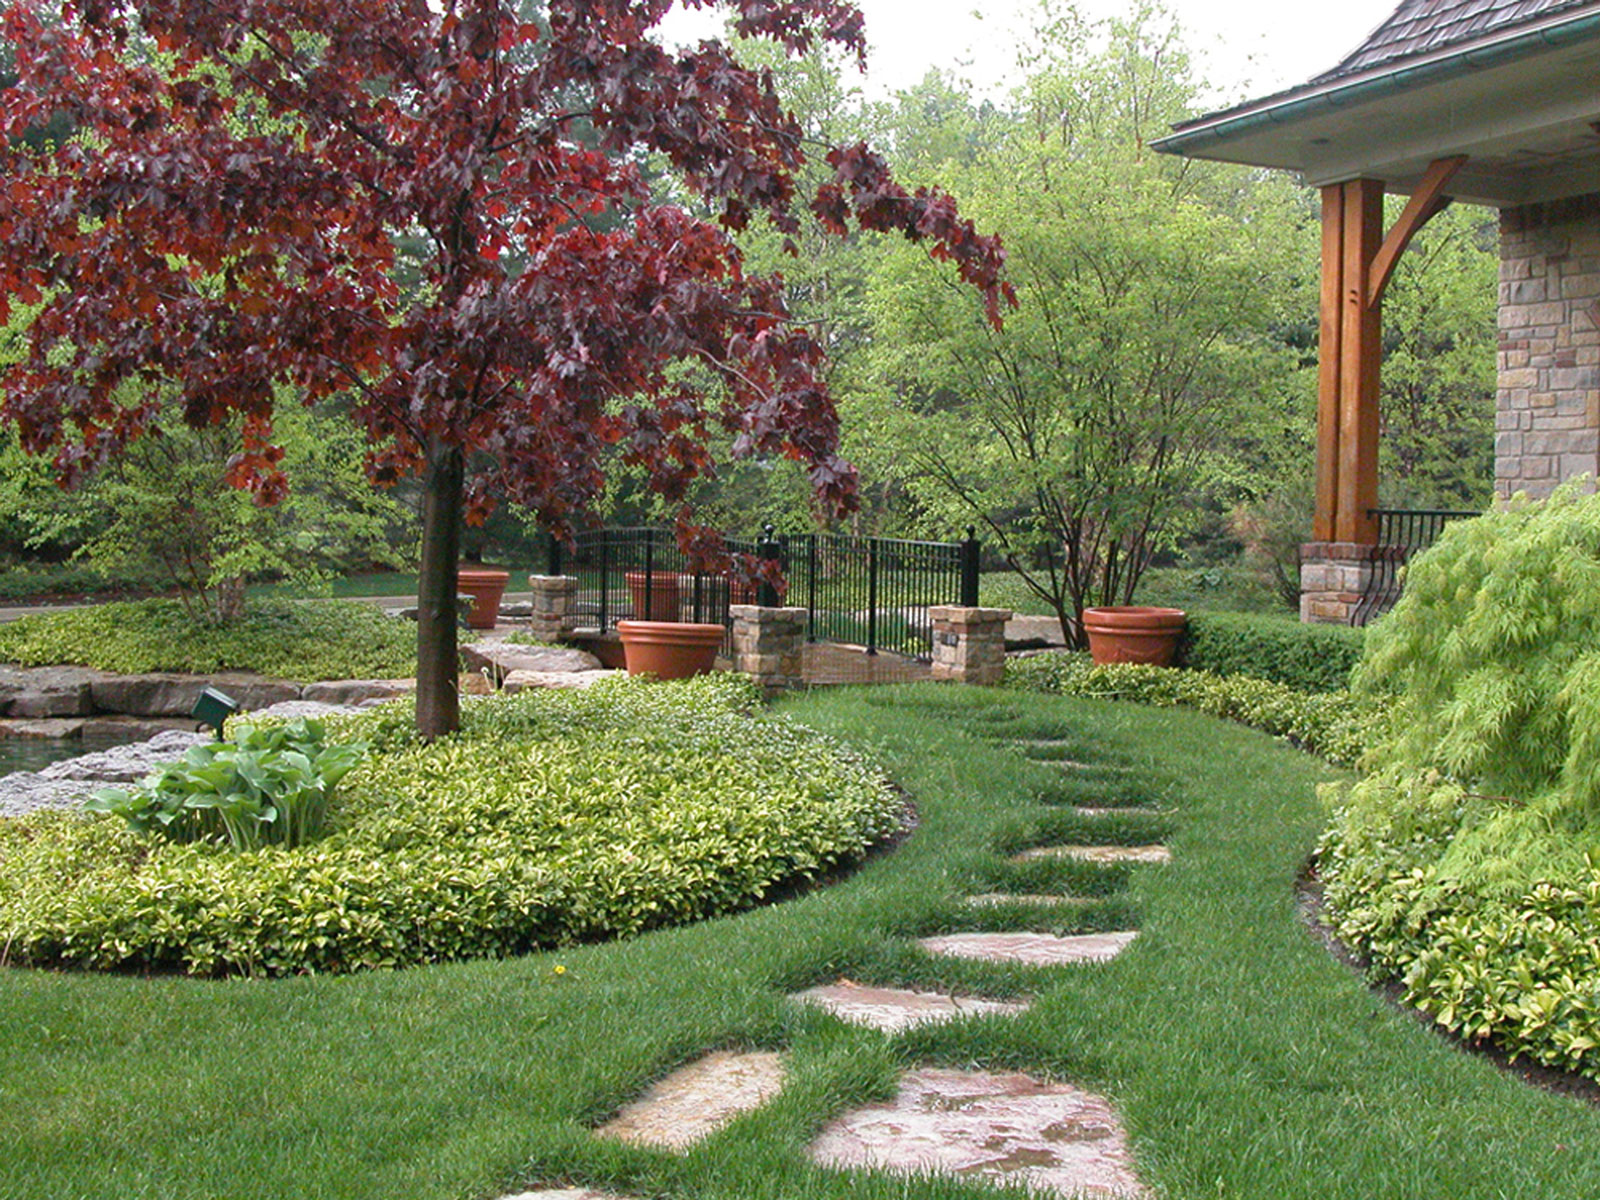 Contact us artesia residential for Landscaping ideas for large open areas